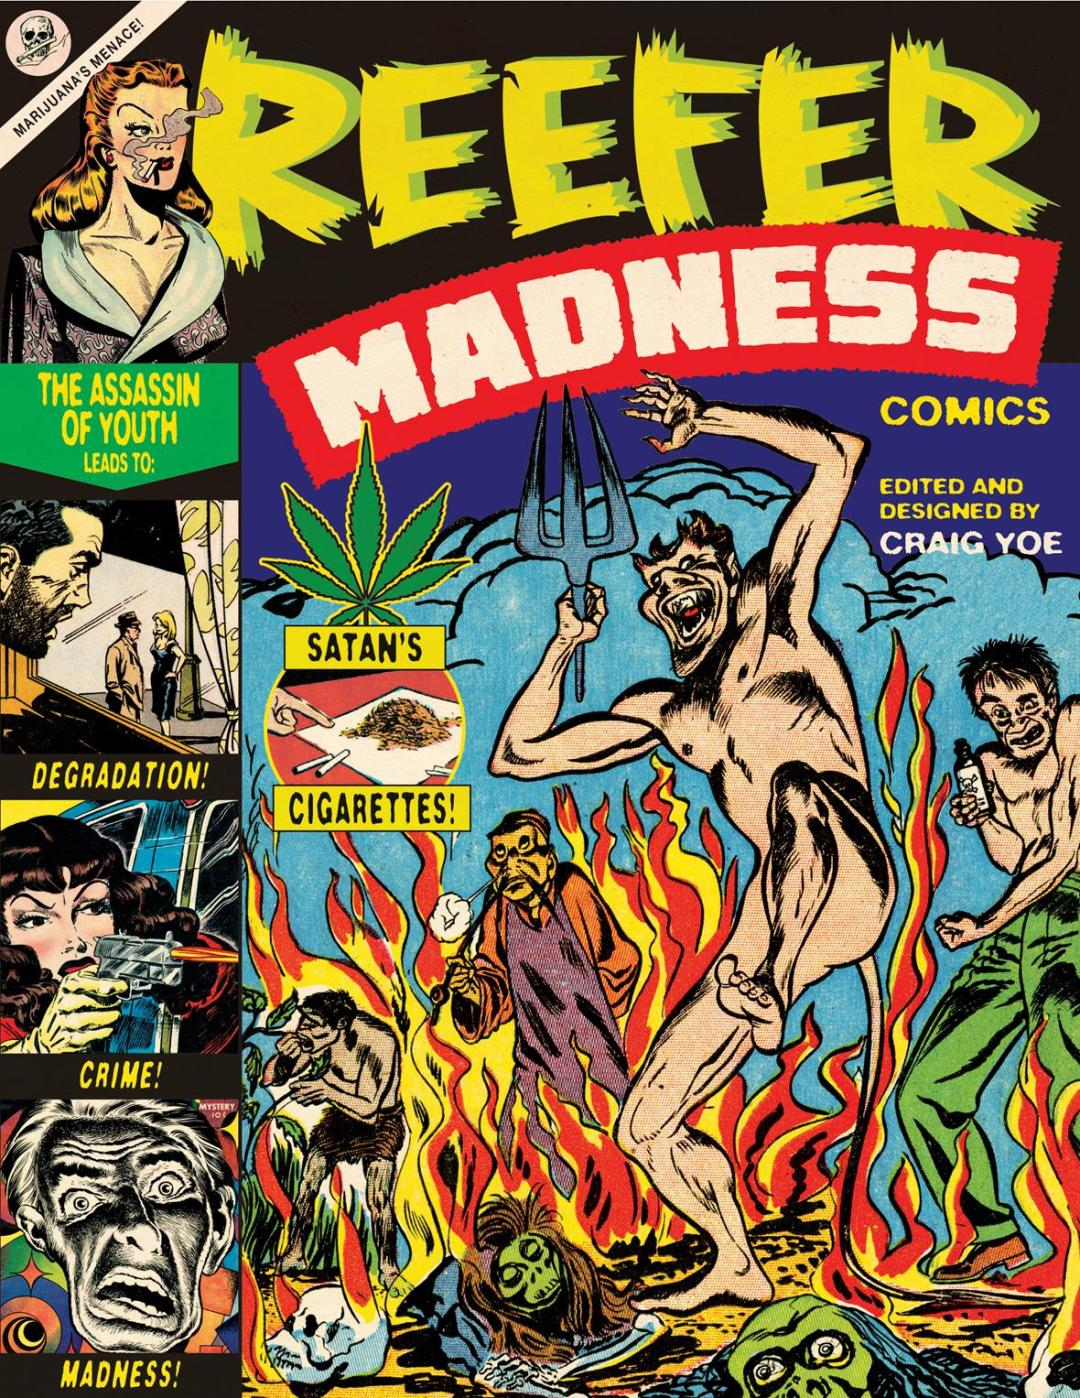 Dark Horse Warns Against the Dangers of Satan's Cigarettes in 'Reefer Madness!'